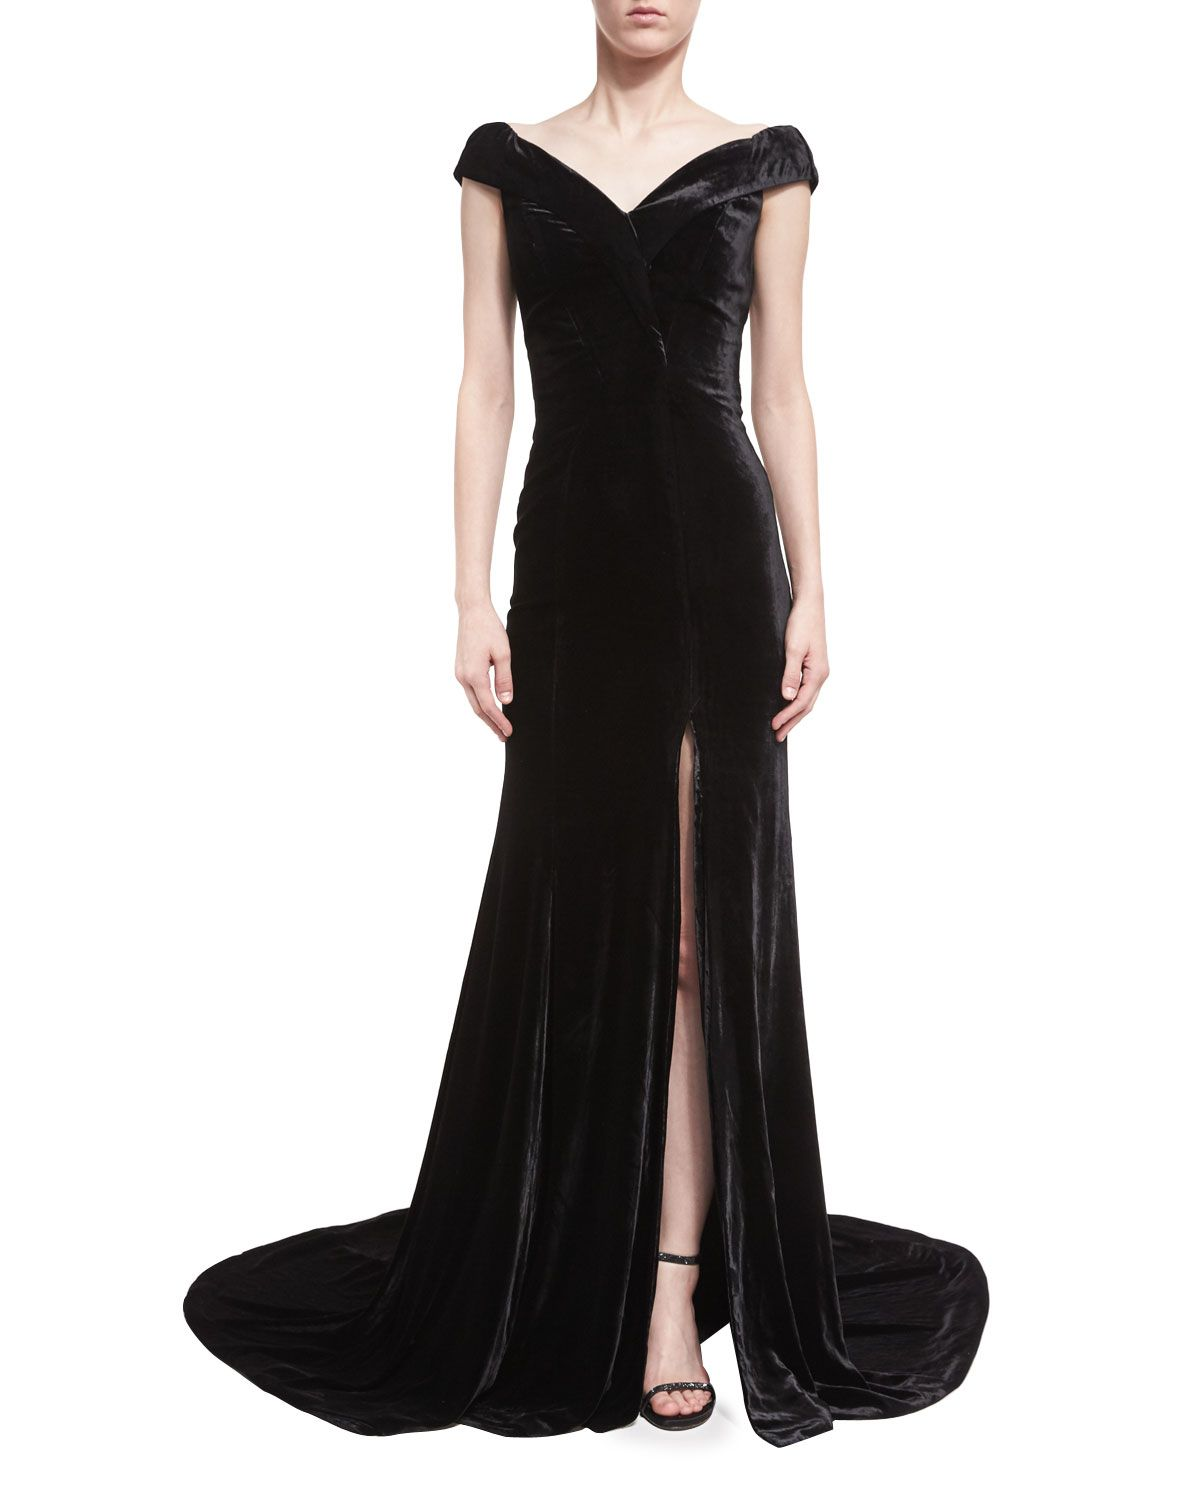 Neiman marcus dresses for weddings  Violetta Velvet OfftheShoulder Gown  Products  Pinterest